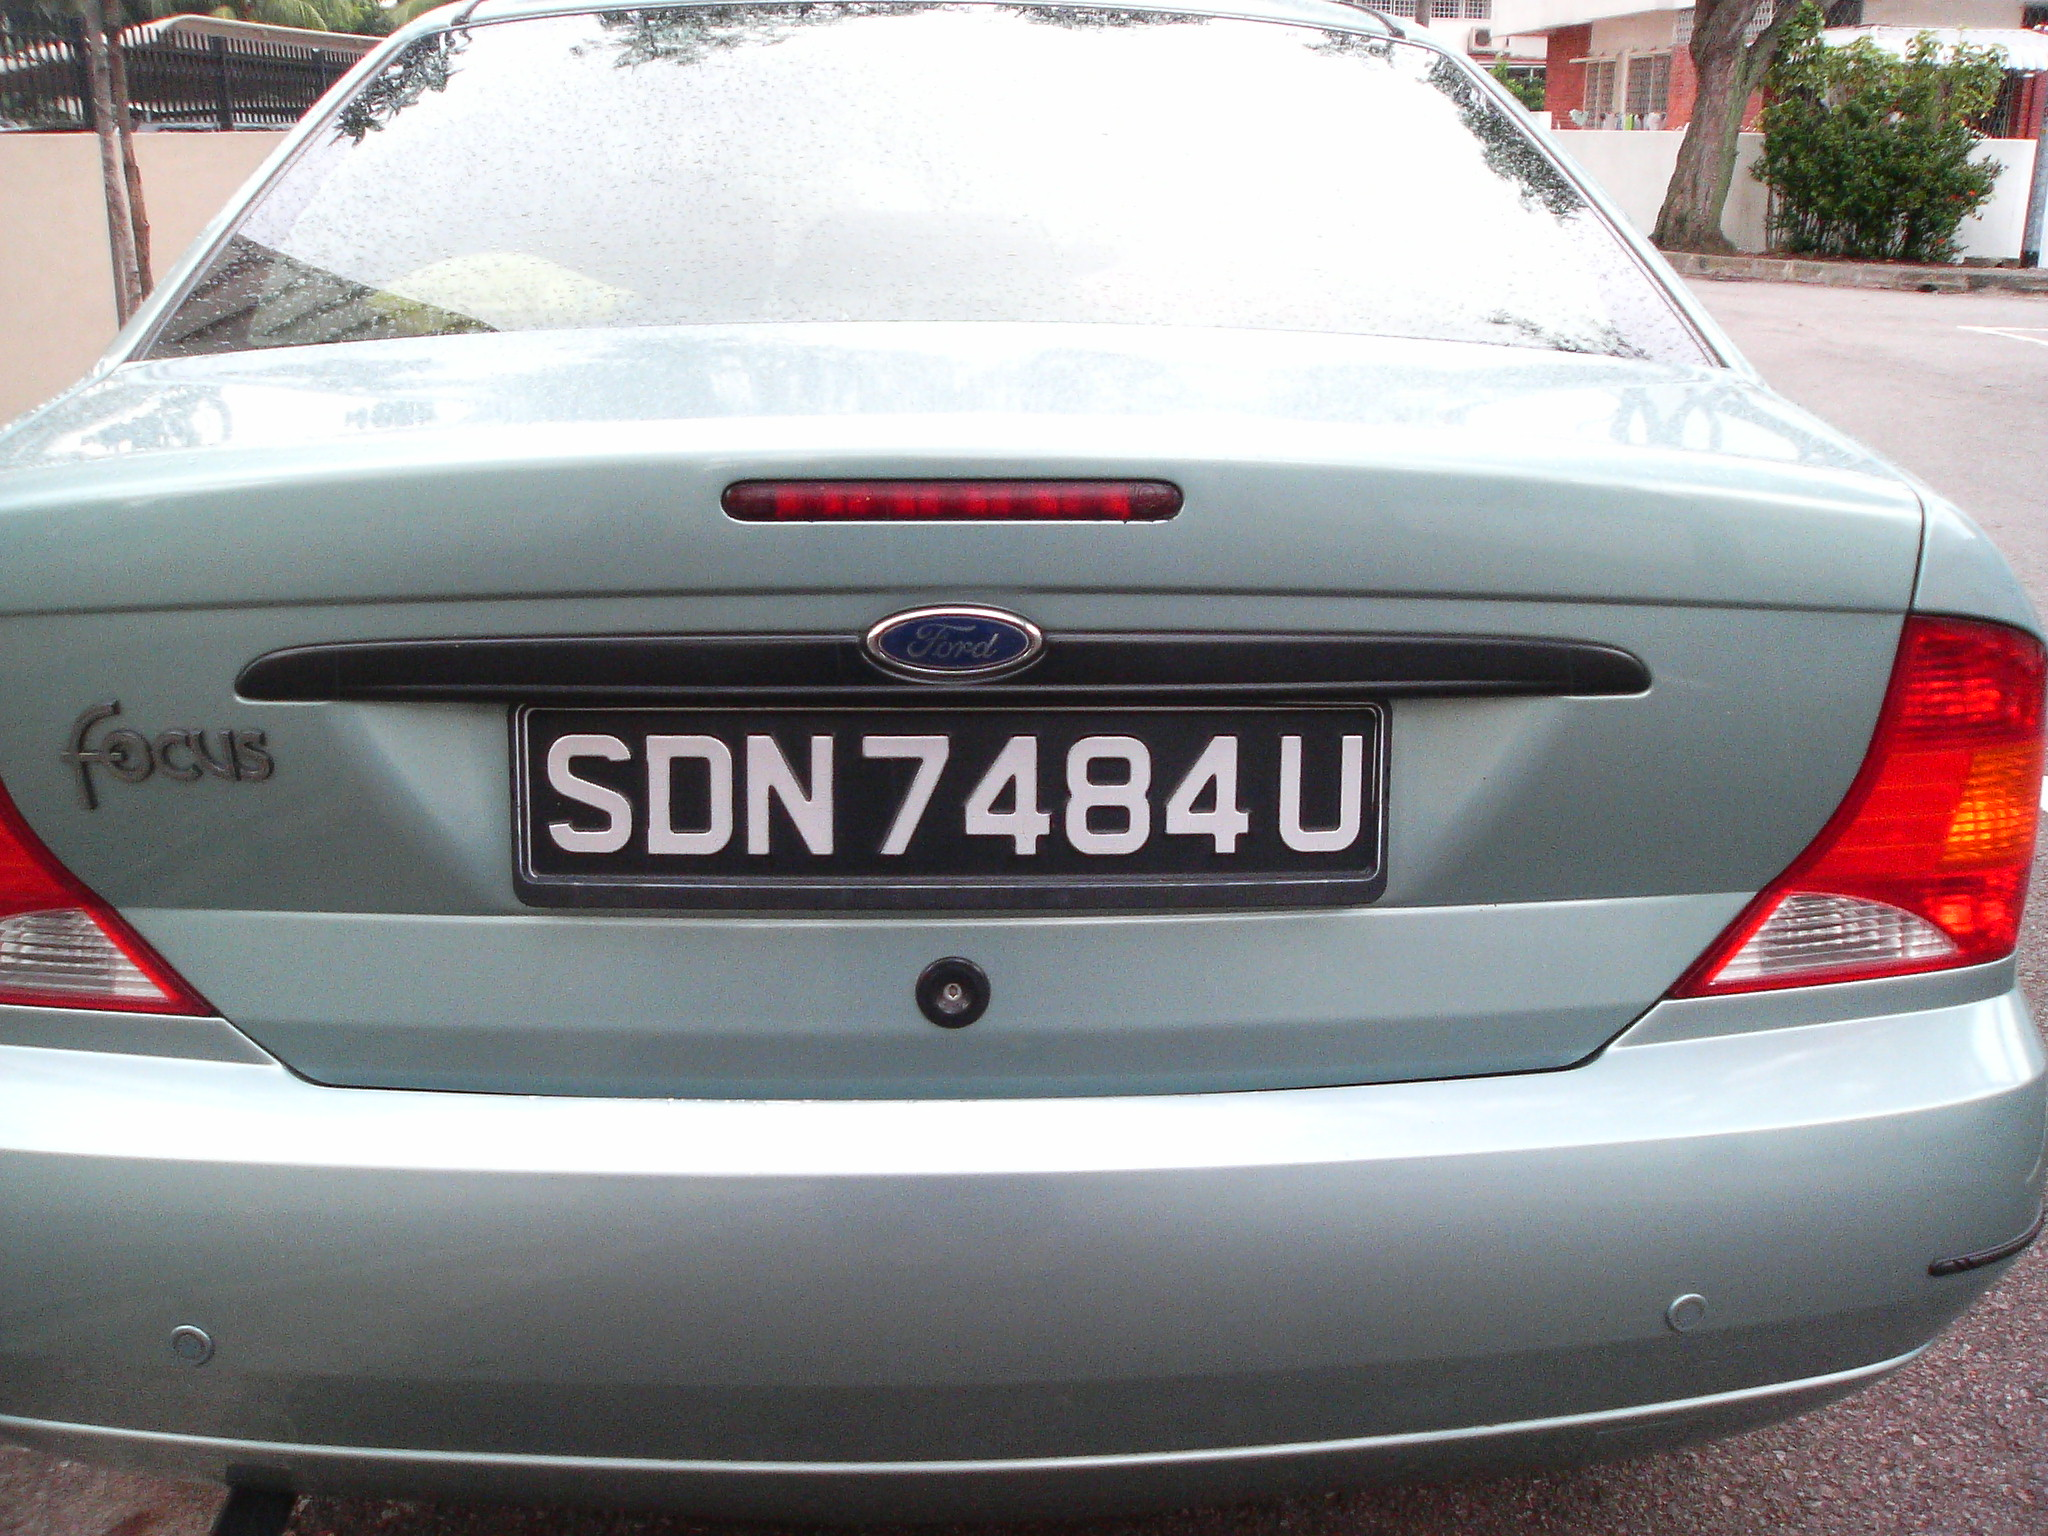 File:Singapore 1990 vehicle registration plate of a silver Ford ...